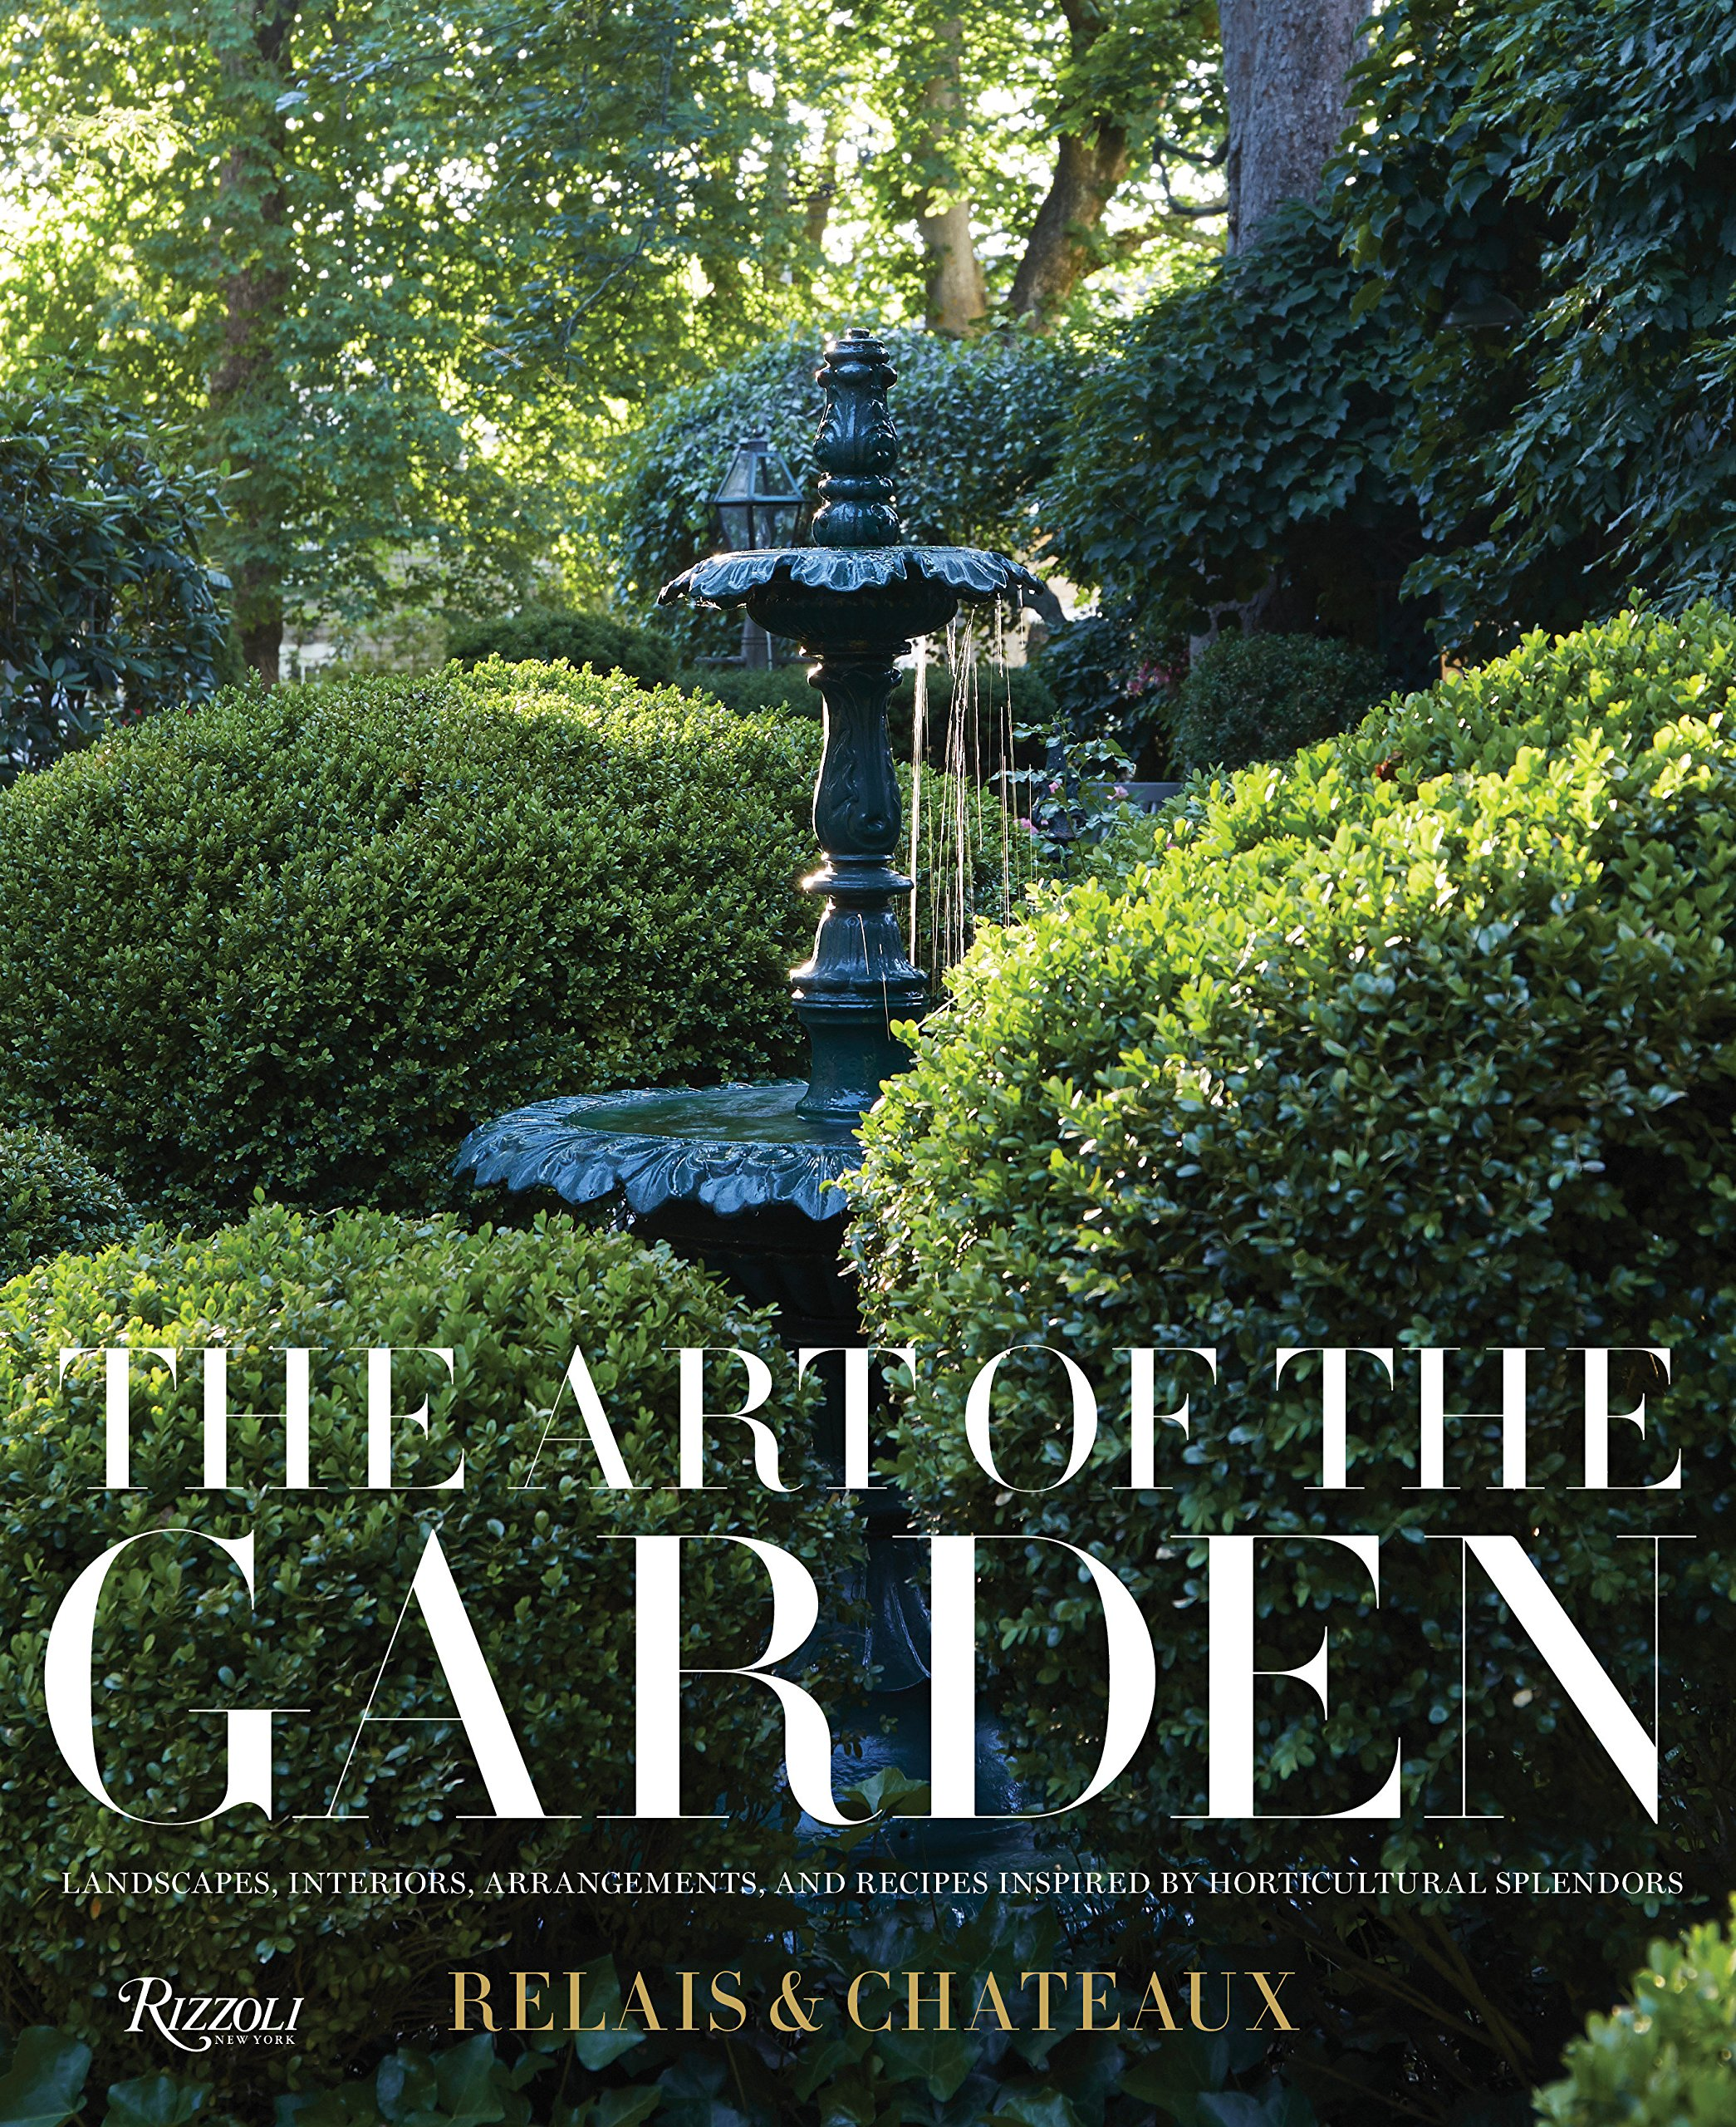 The Art Of The Garden Landscapes Interiors Arrangements And